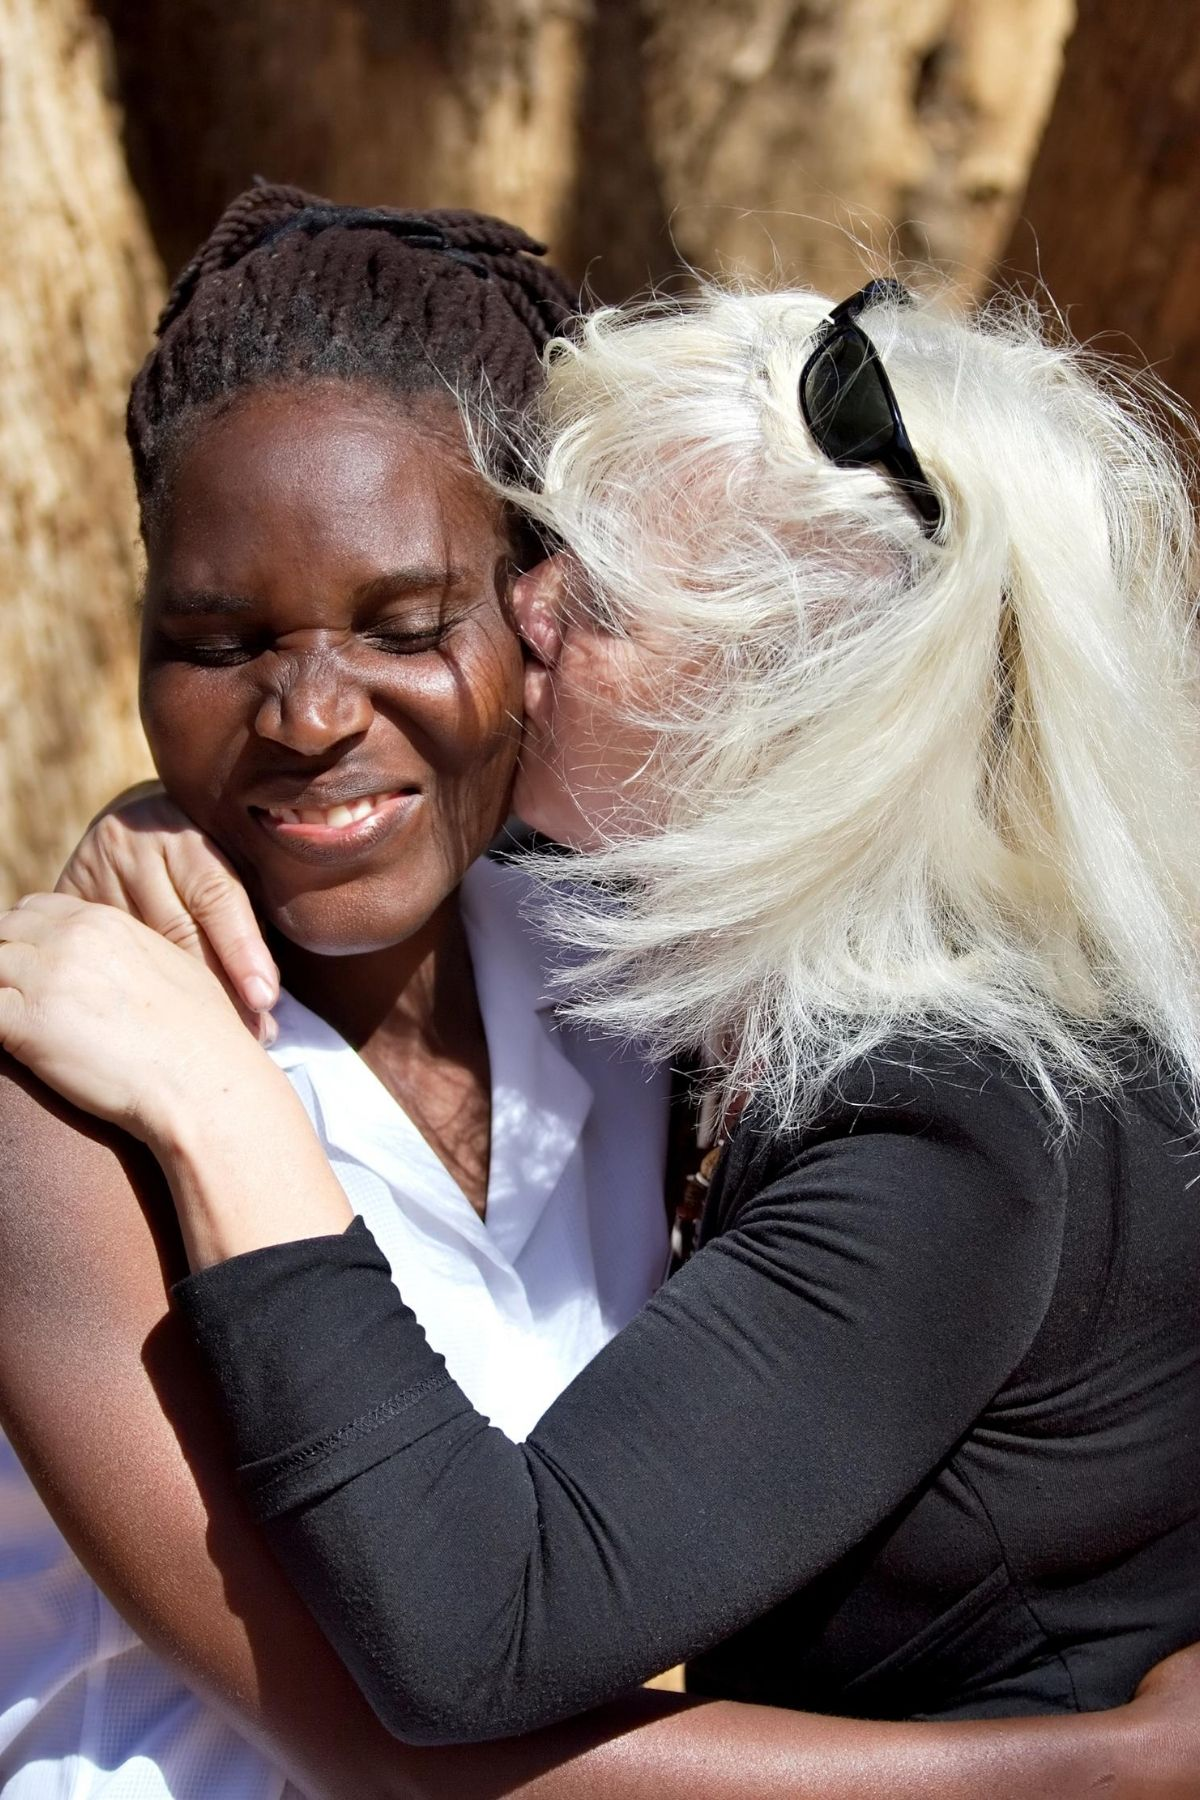 lesbian couple with an age and racial difference